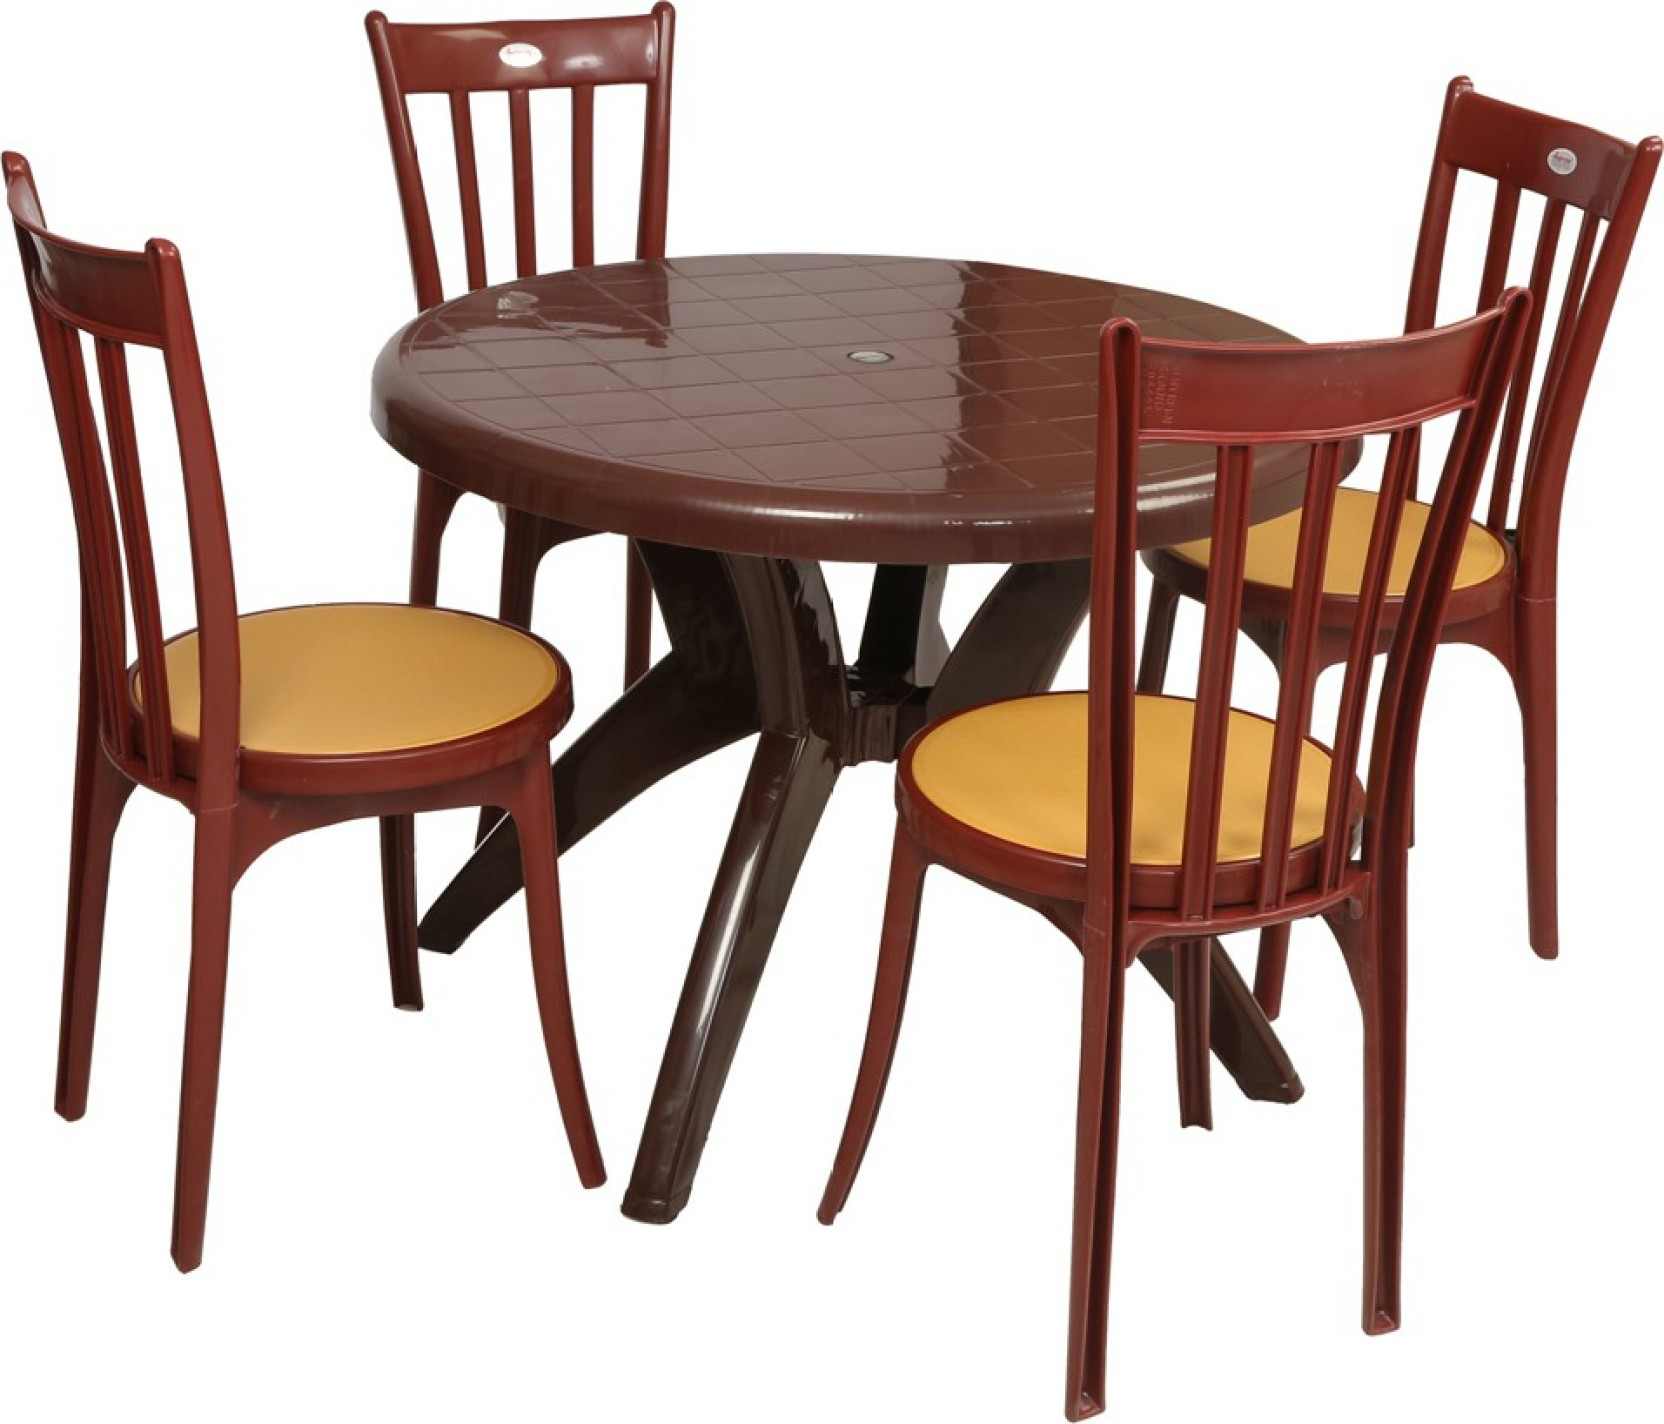 Supreme teak wood plastic table chair set price in india for Dining table without chairs